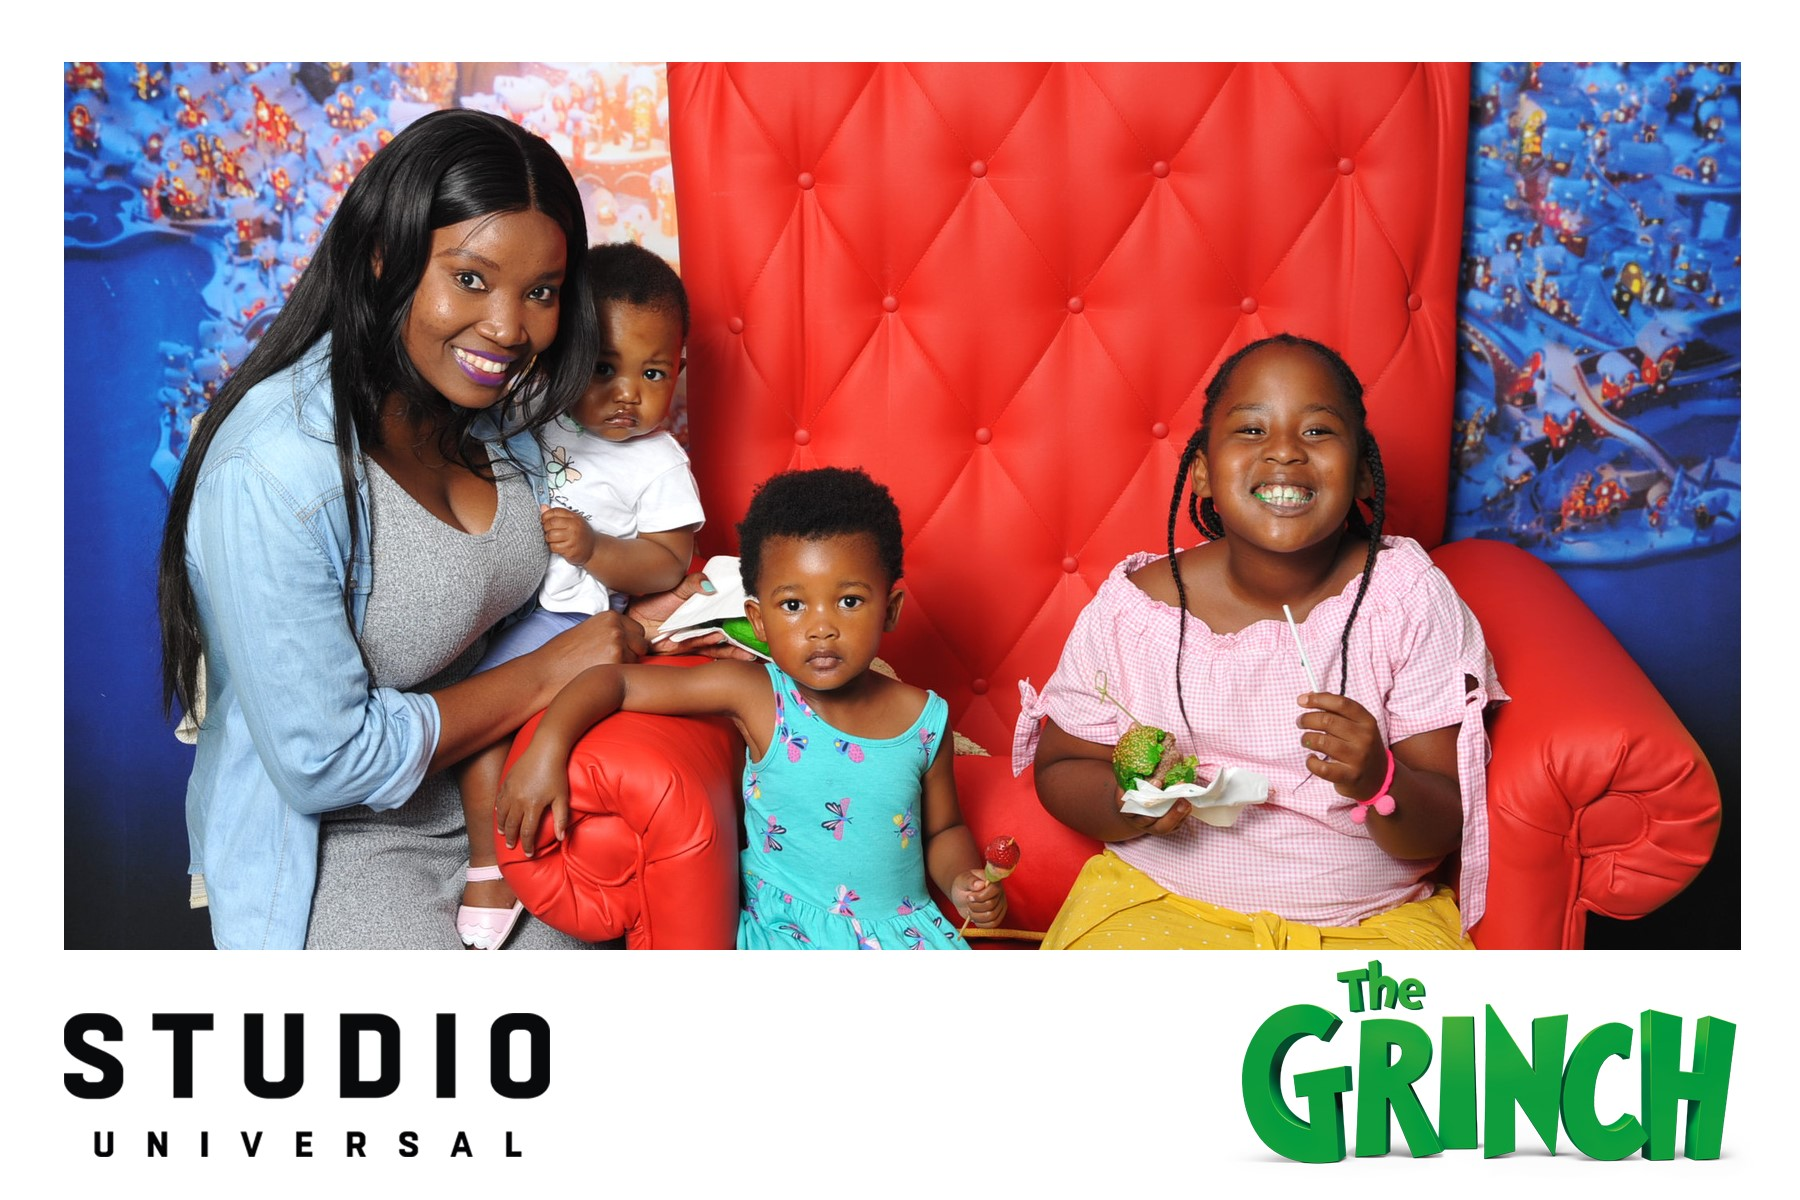 Photo booth fun at the Grinch exclusive movie screening